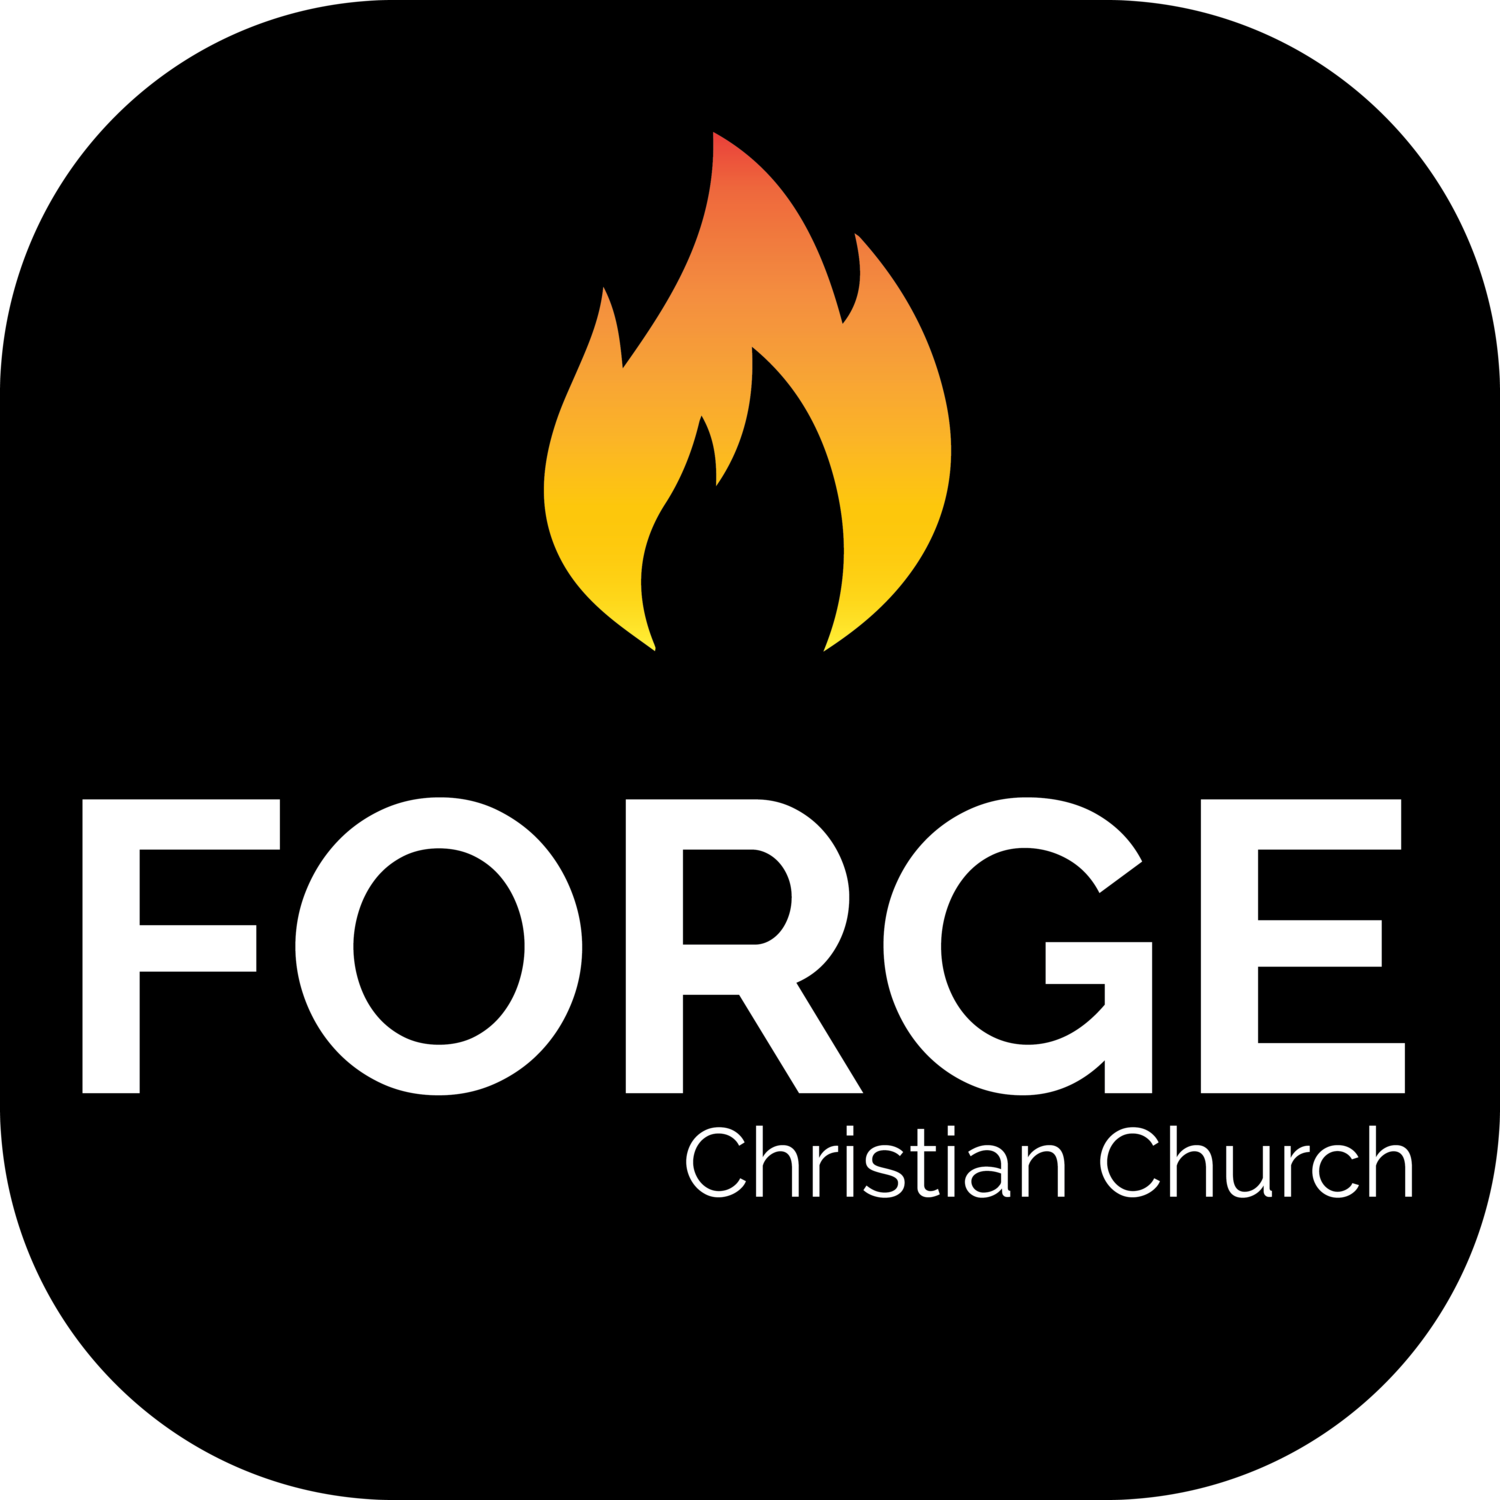 Forge Christian Church